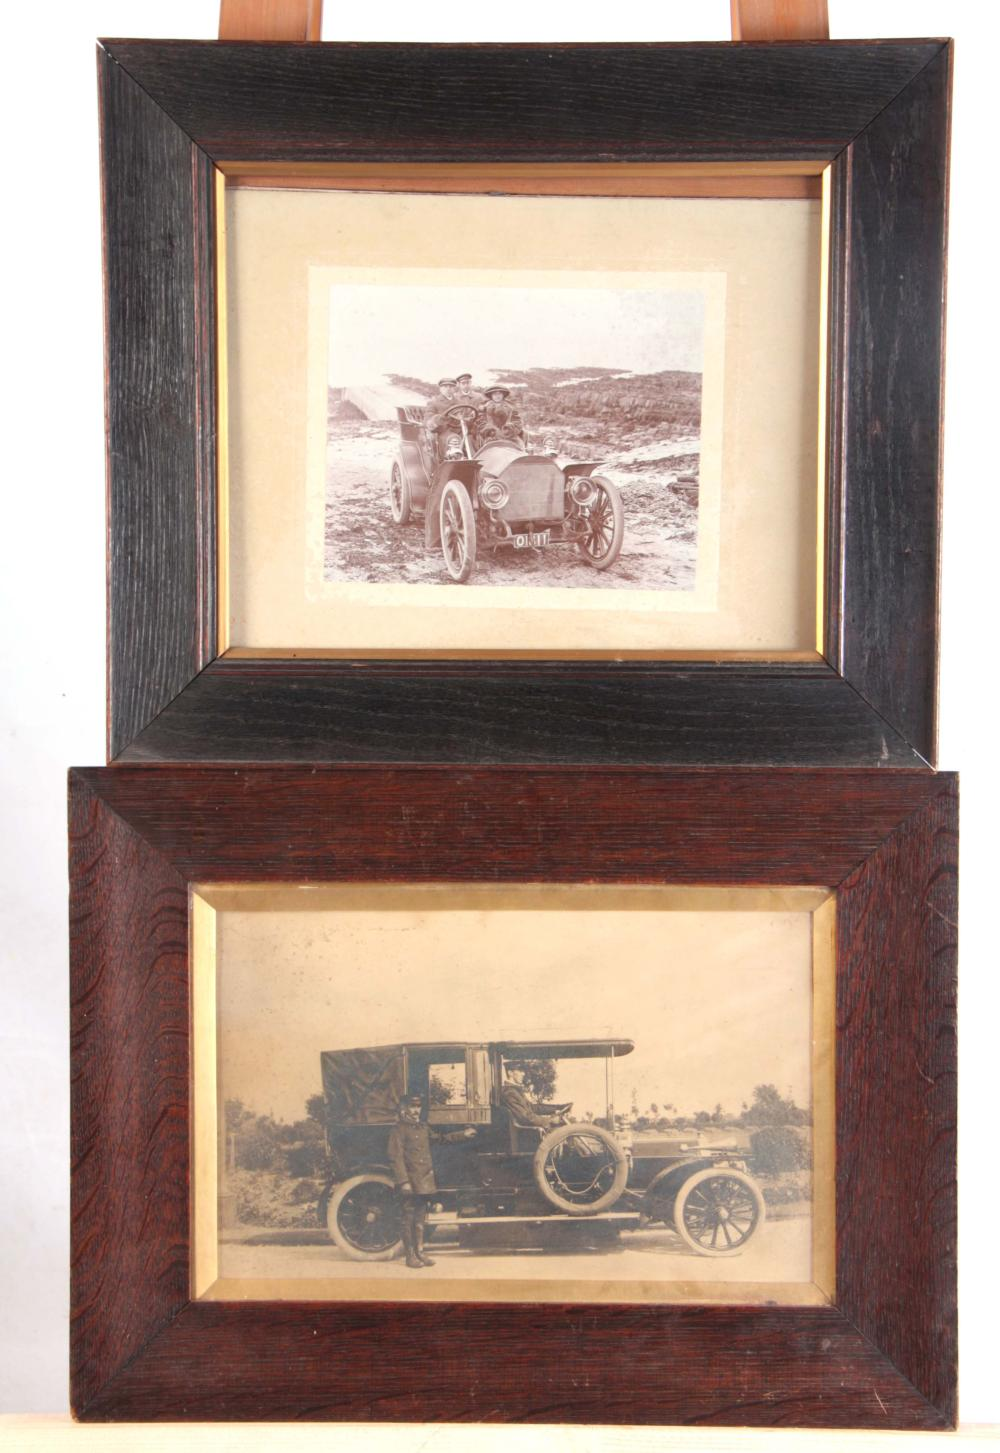 TWO LARGE EARLY 20th CENTURY PHOTOGRAPHIC PRINT OF